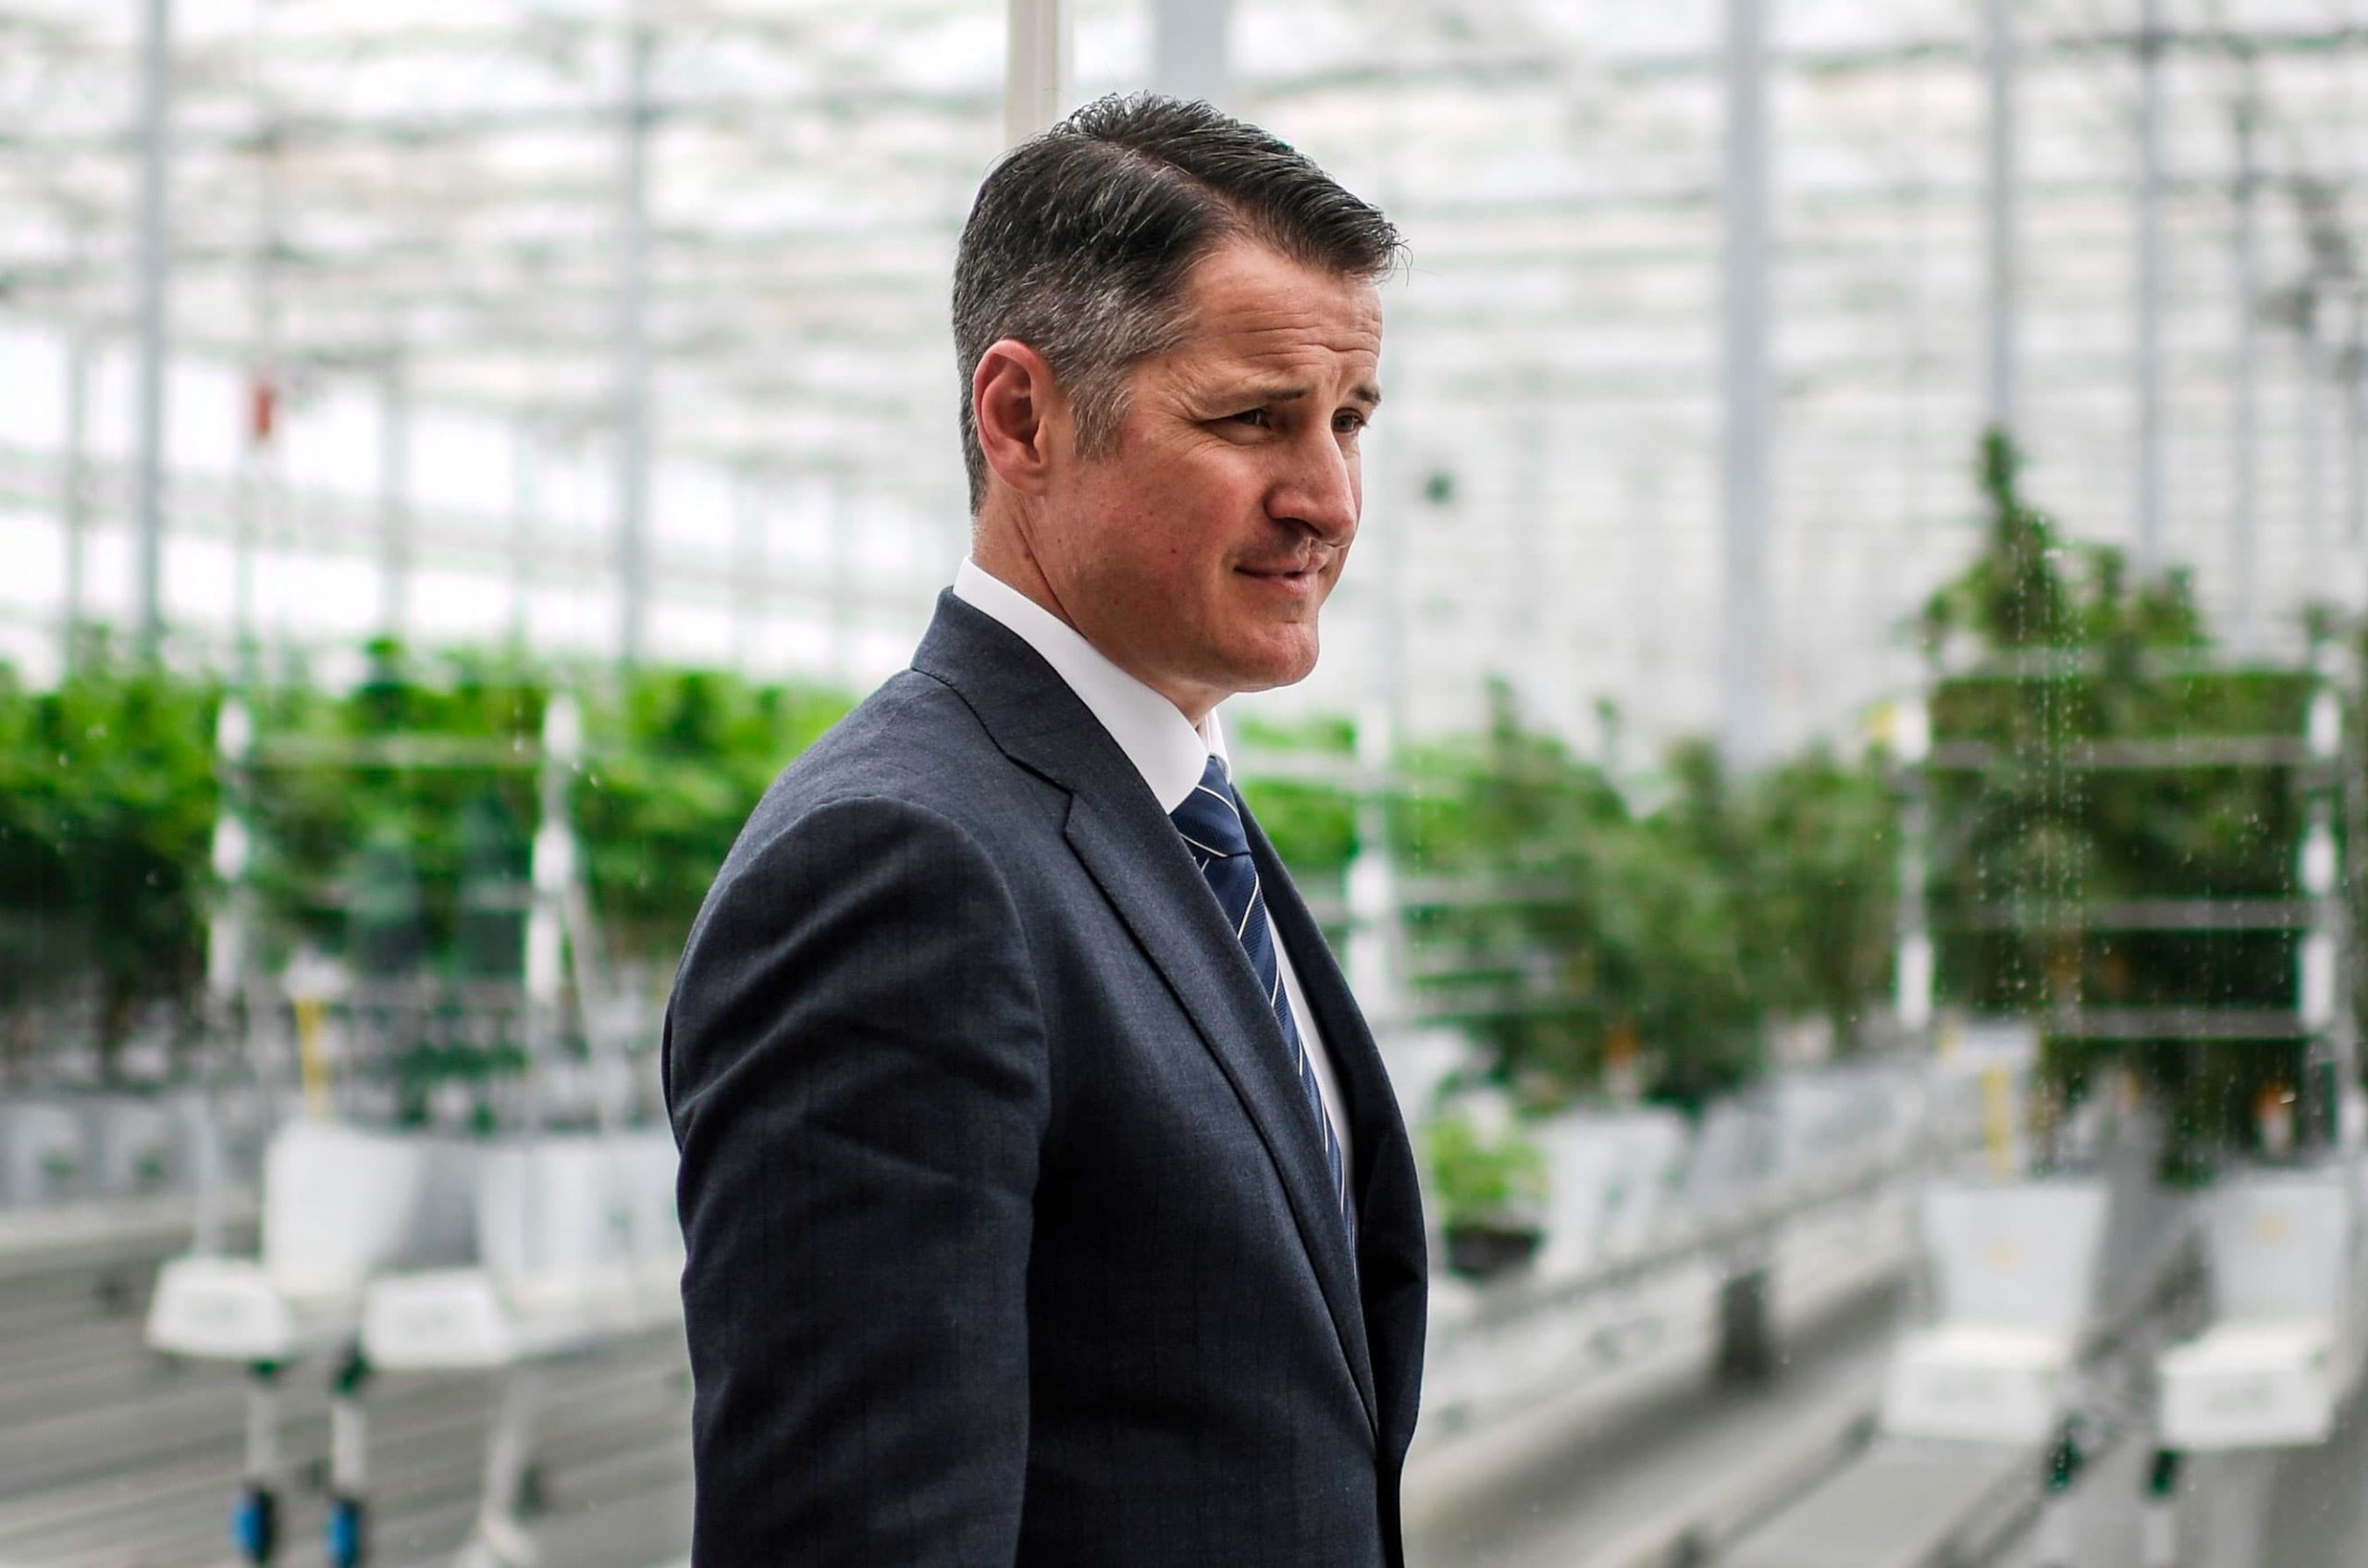 tilray-ceo-expects-u-s-federal-cannabis-legalization-within-two-years